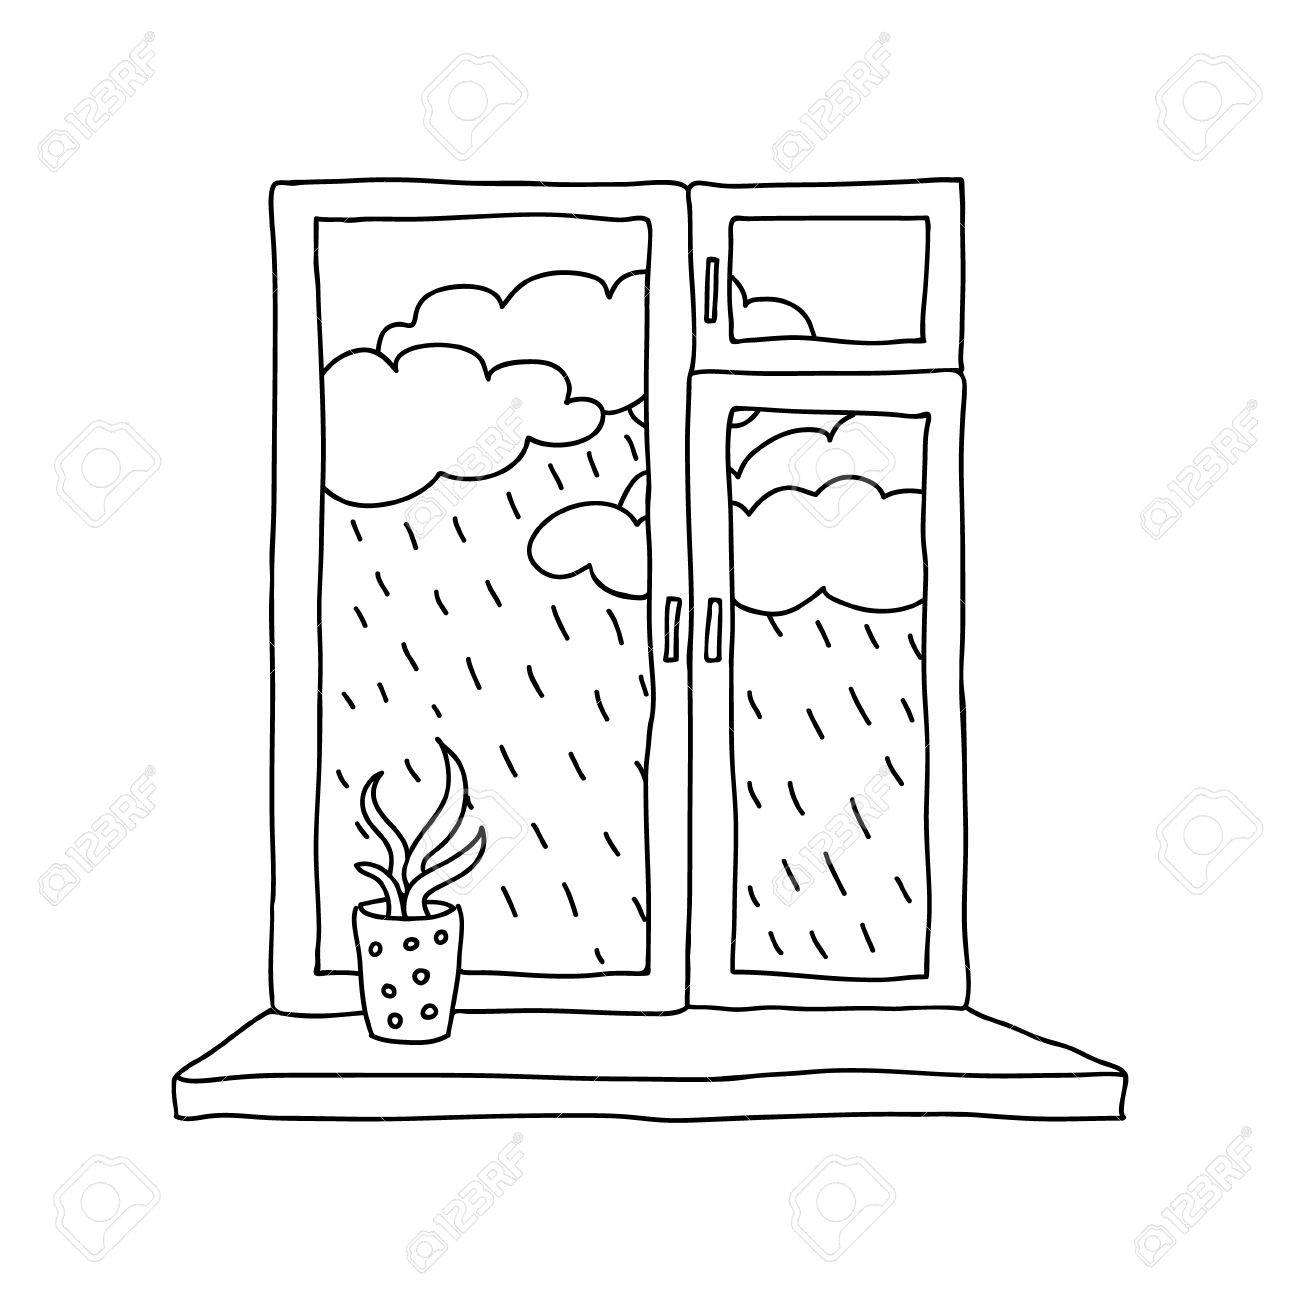 Rain Outside The Window Royalty Free Cliparts, Vectors, And Stock ... for Window Clipart Black And White  146hul